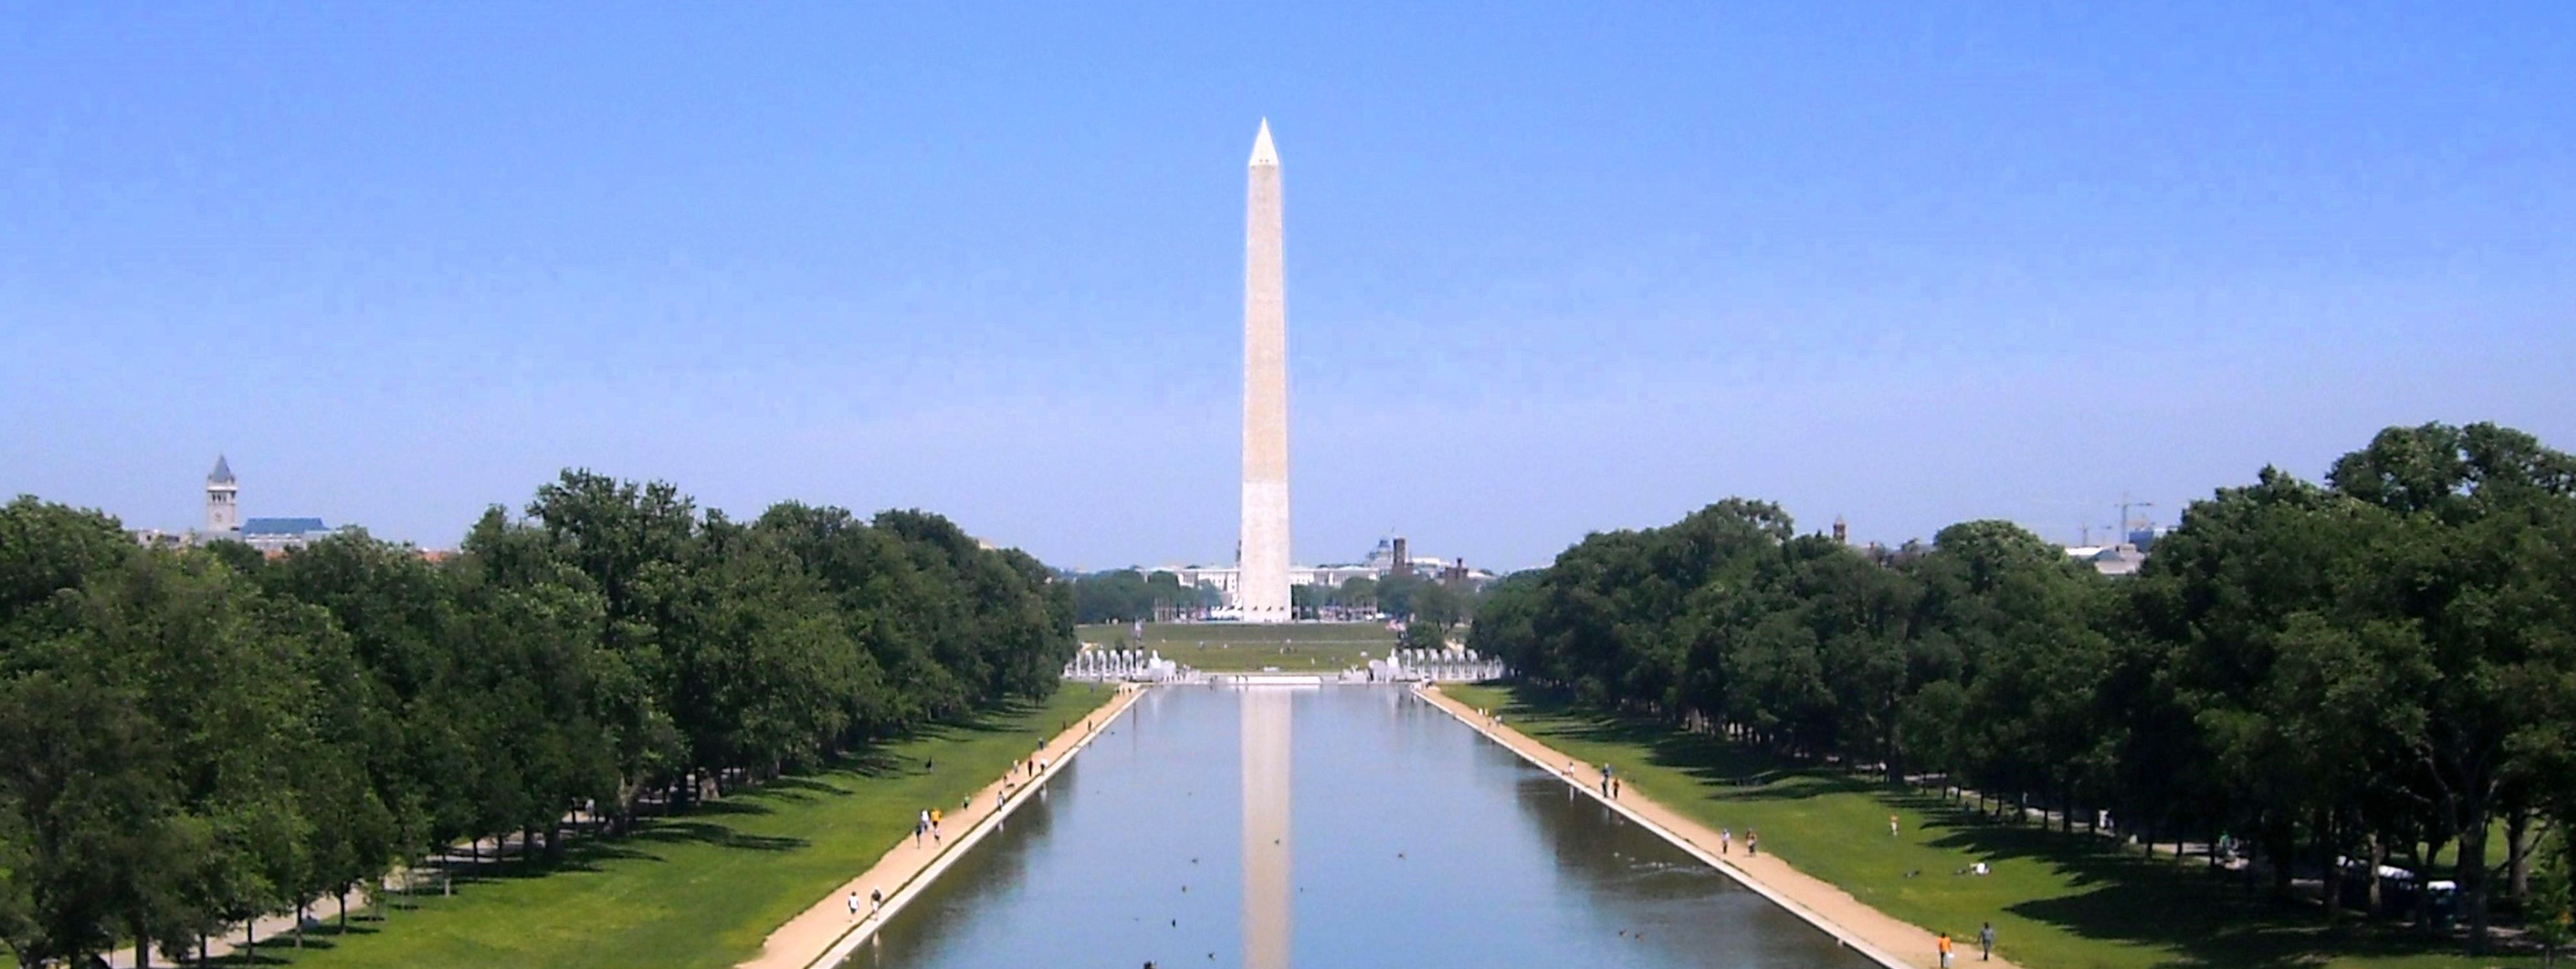 Image result for Pictures of the Washington Monument in Washington D.C.